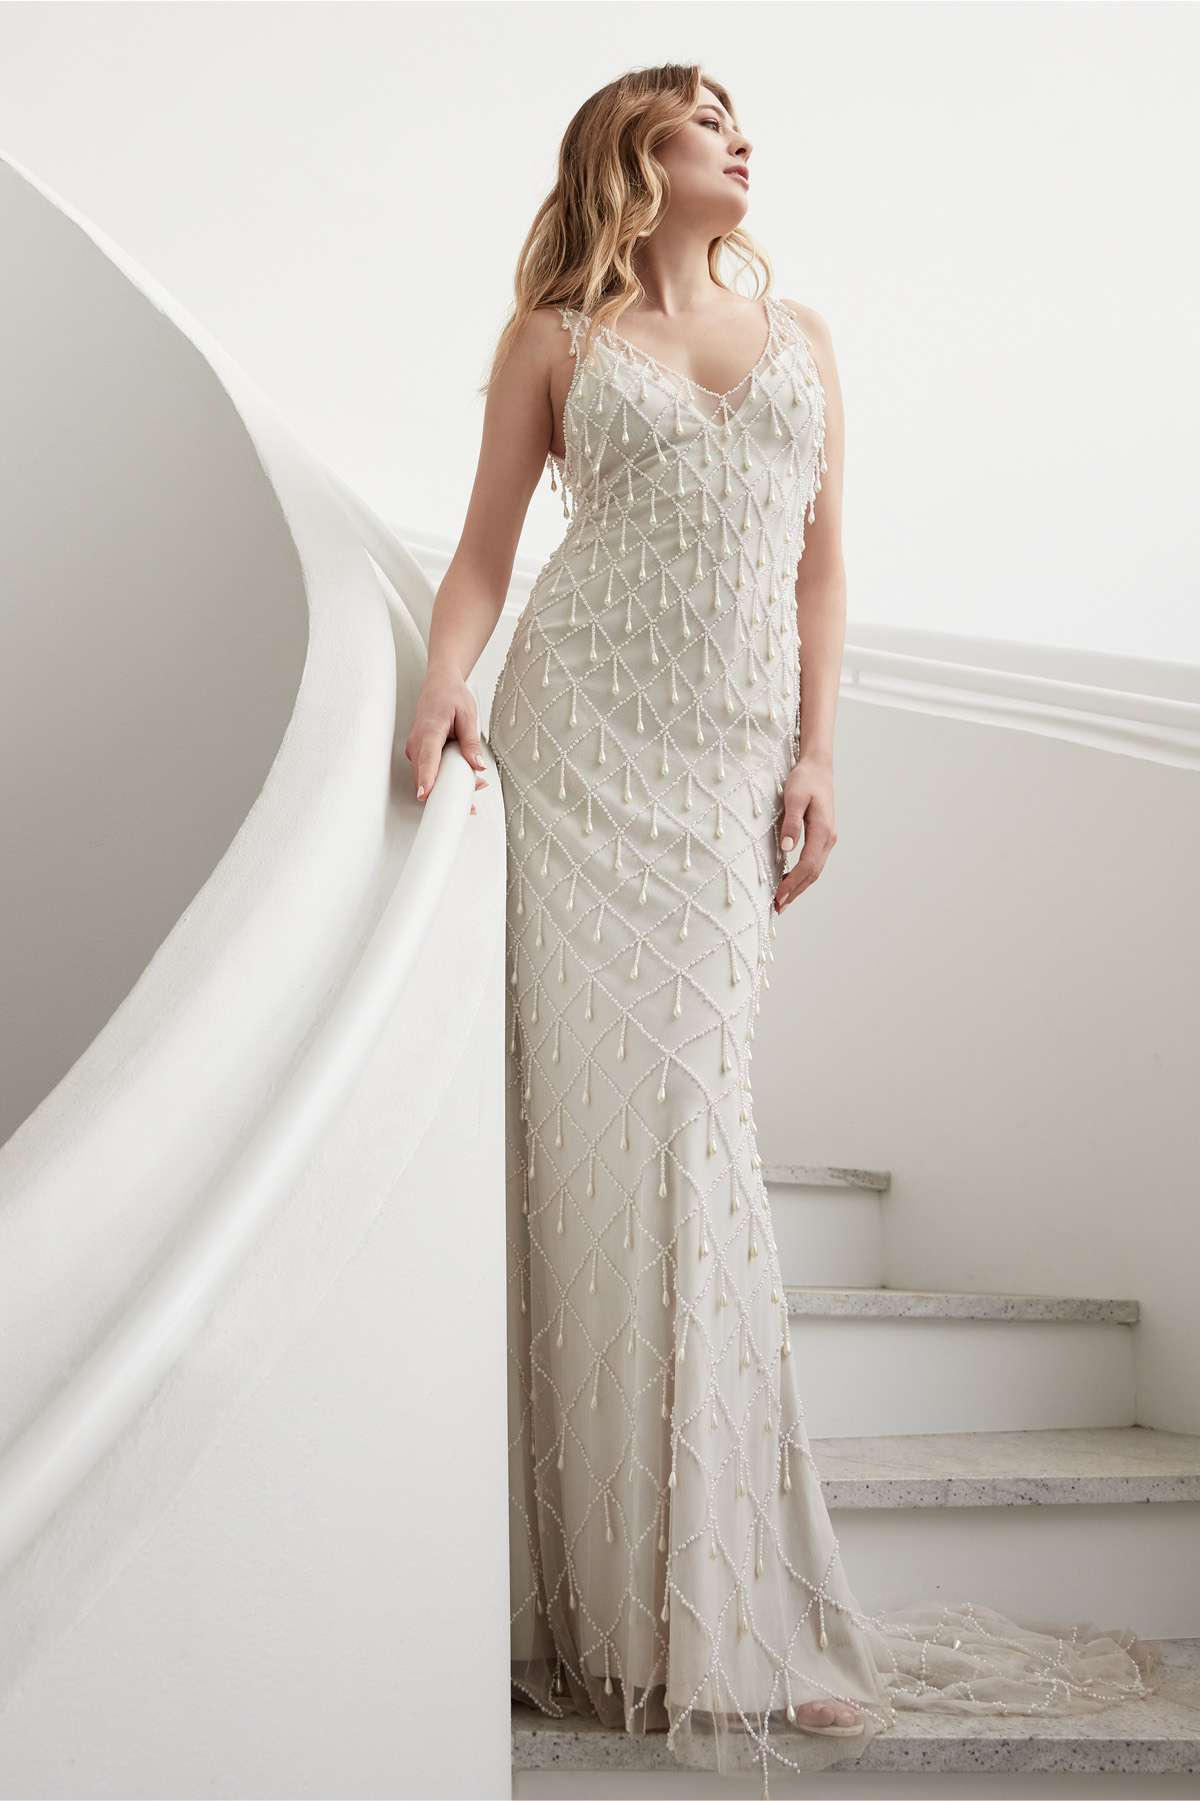 Model in sleeveless V-neck sheath dress with drop crystals in a lattice pattern